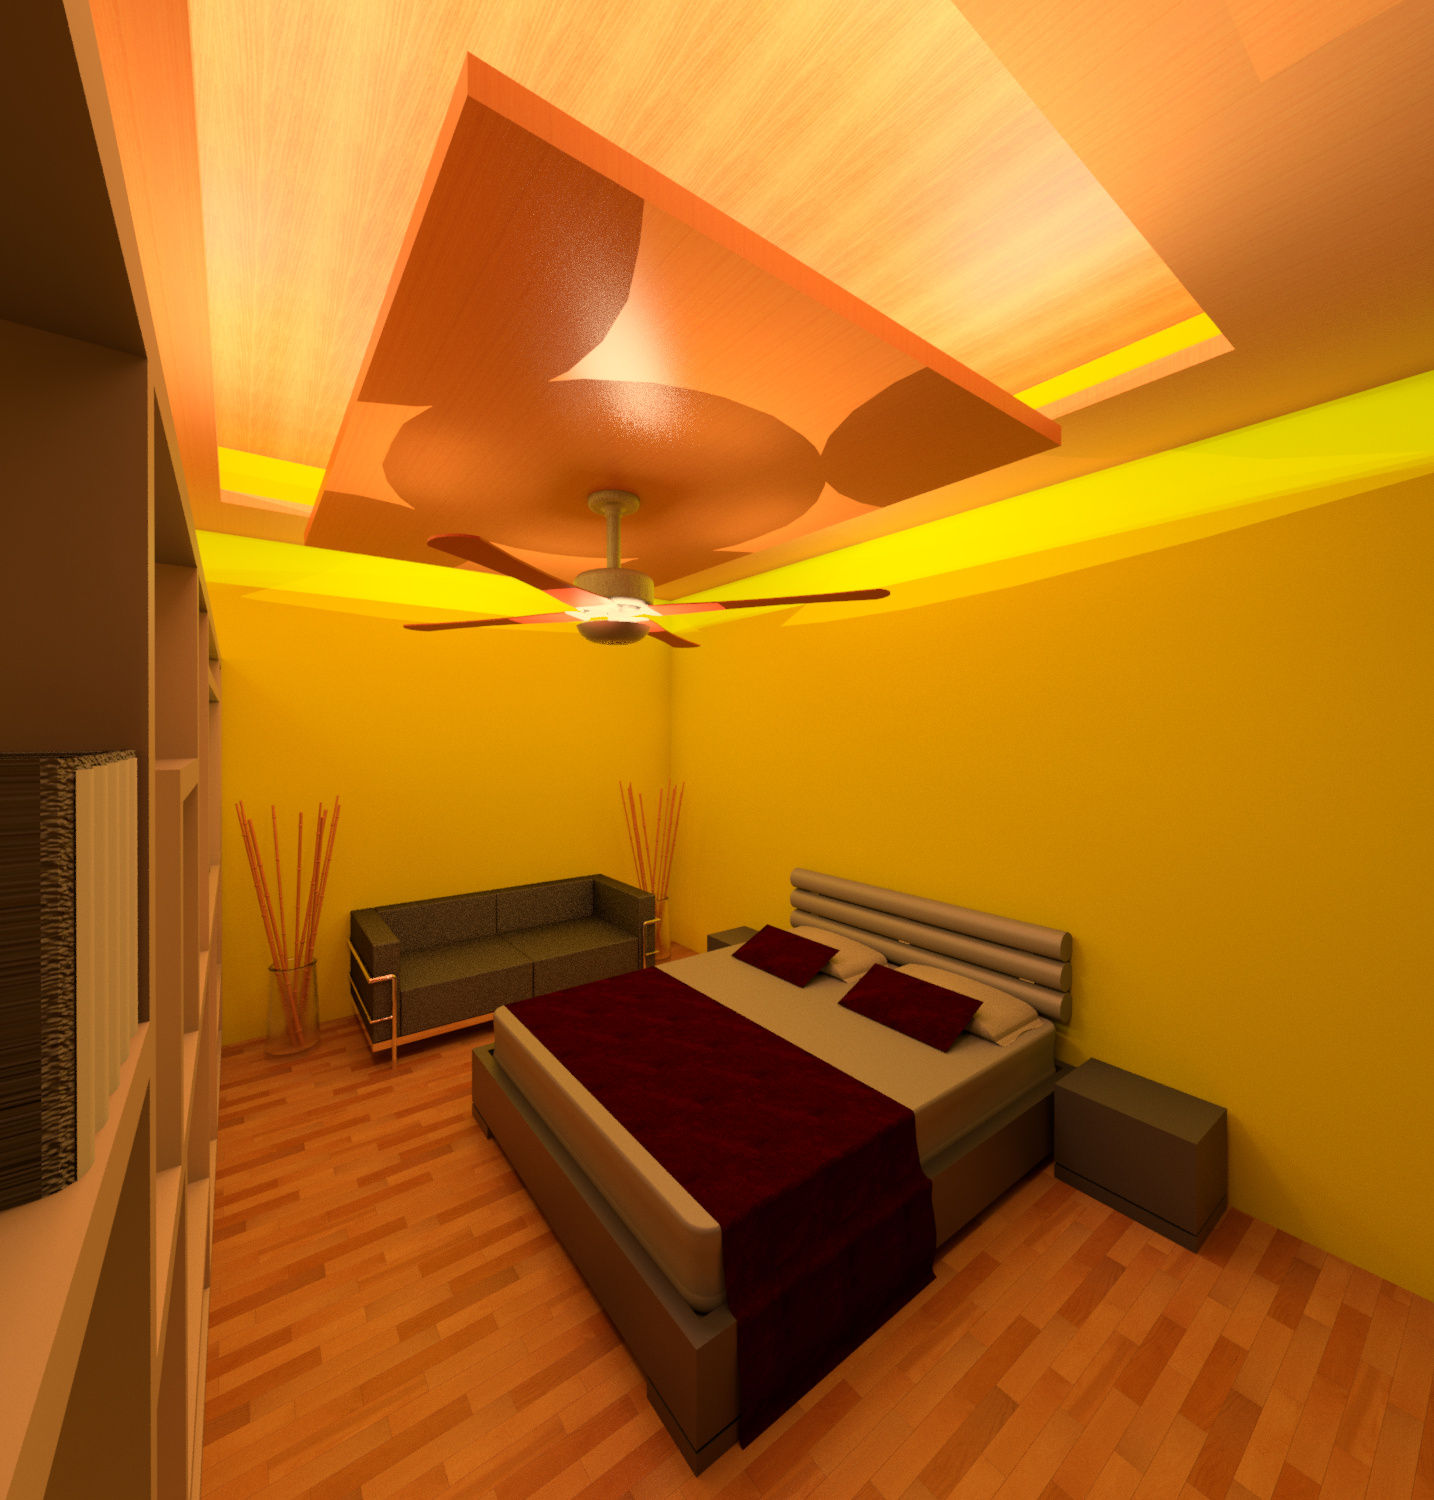 Ceiling Design Online False Ceiling Design Autodesk Online Gallery